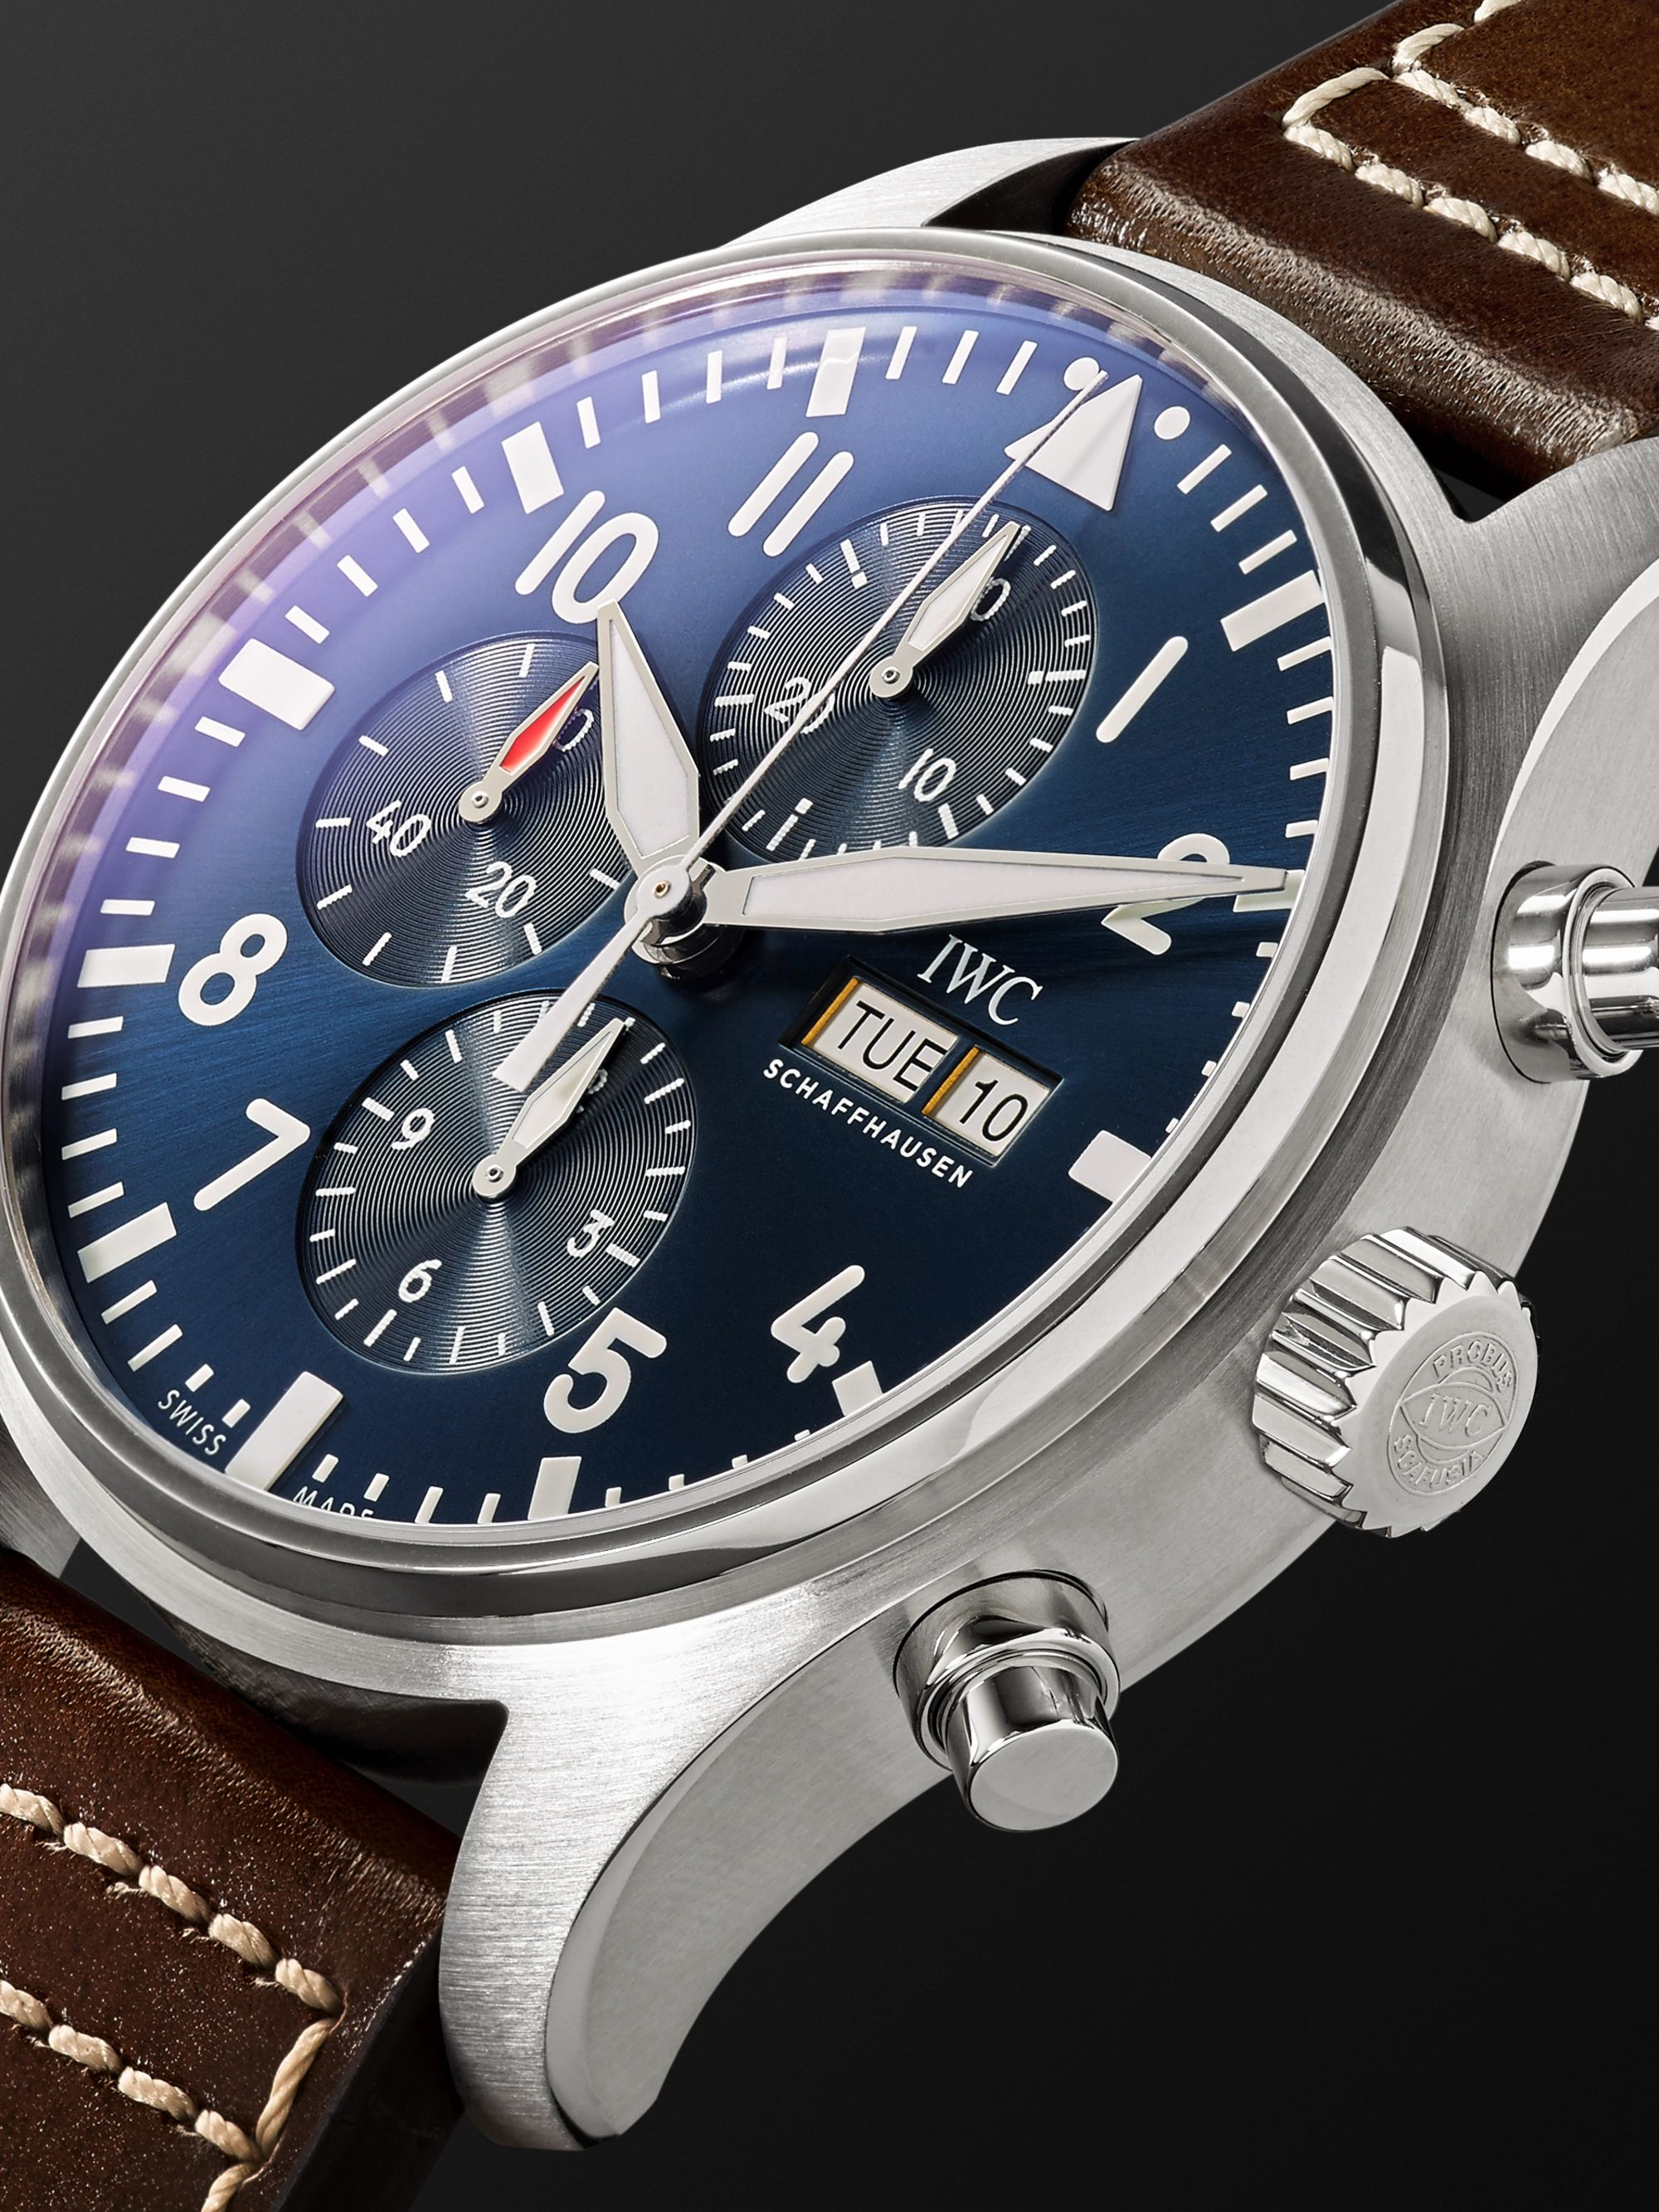 IWC SCHAFFHAUSEN IW377714 Pilot's Le Petit Prince Edition Chronograph 43mm Stainless Steel and Leather Watch, Ref. No. IW377714